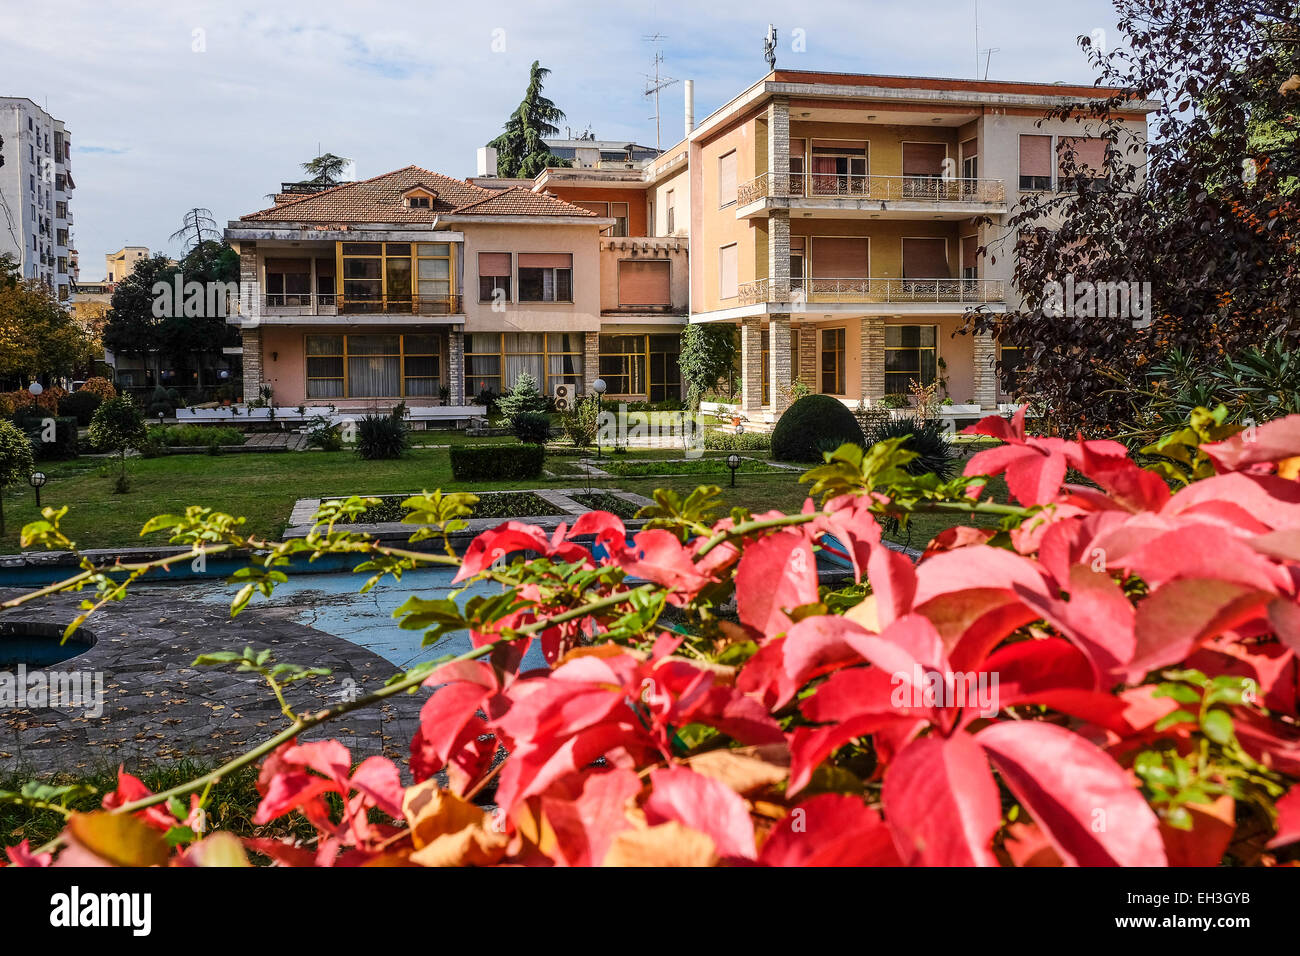 Albania, Tirana, the Villa of the dictator Enver Hoxha in the Blloku - Stock Image